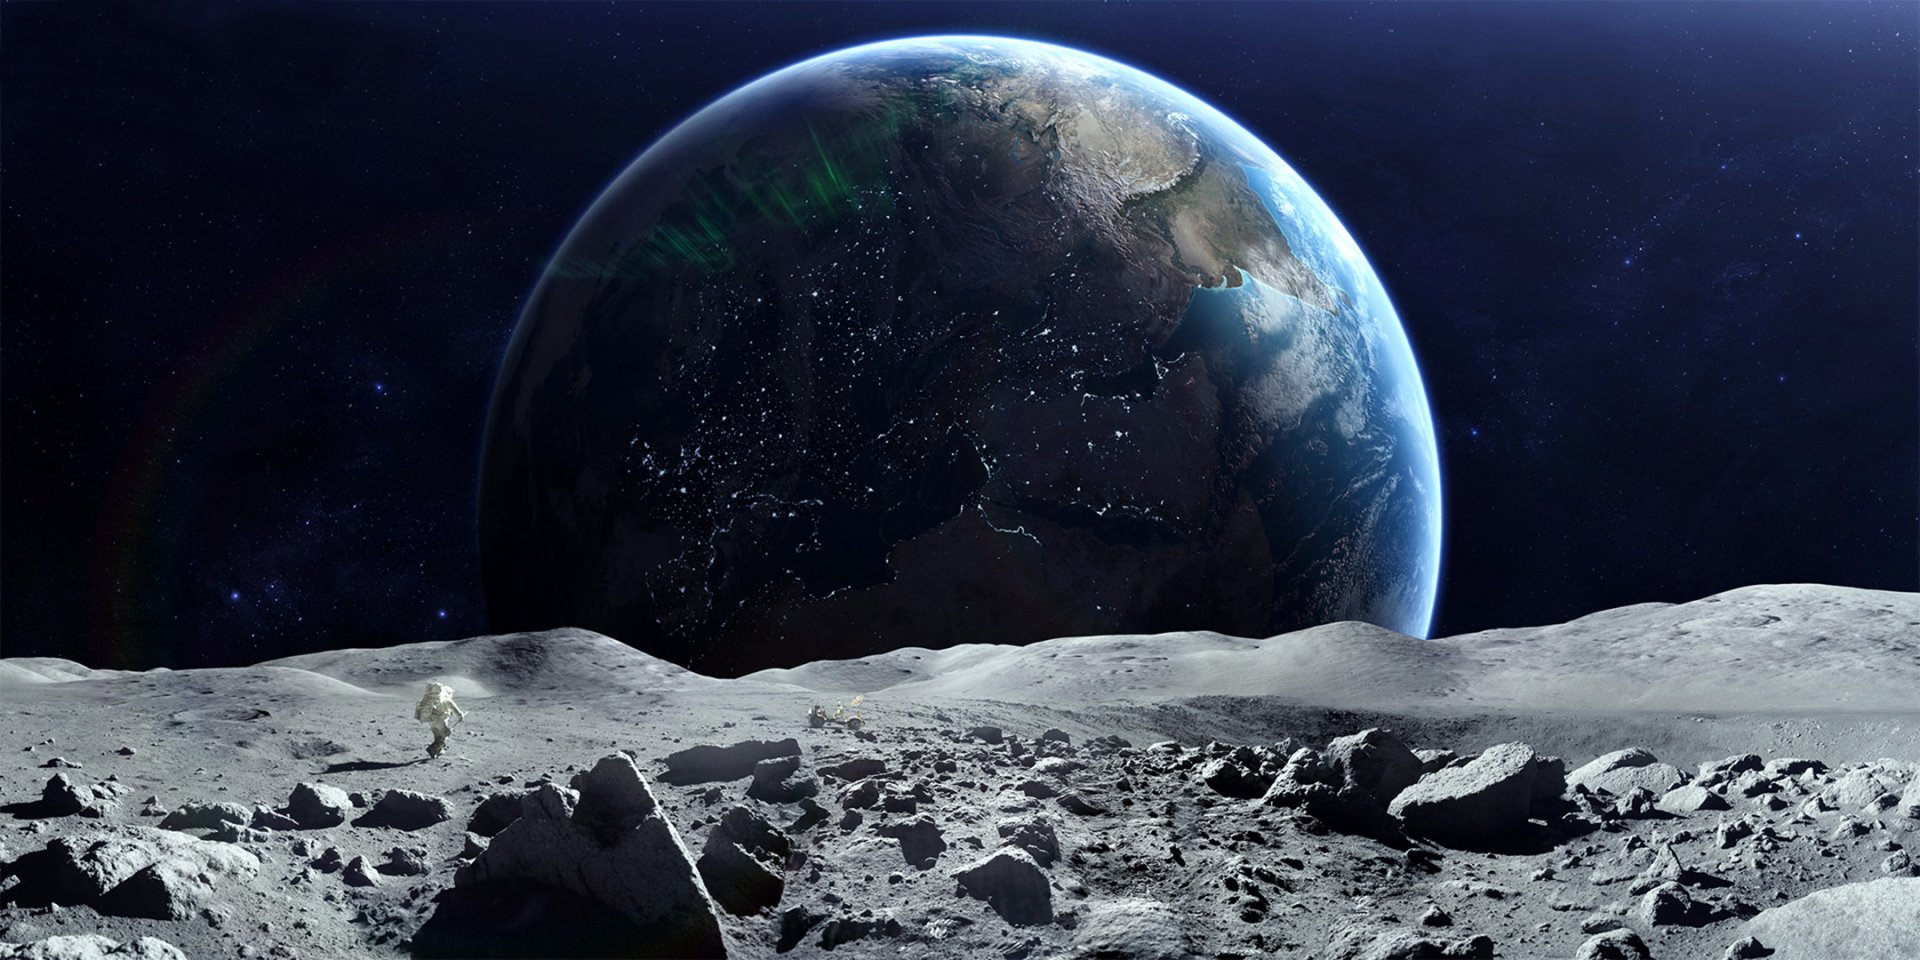 Sci Fi - Astronaut  Earth Moon Space Planet From Space Wallpaper